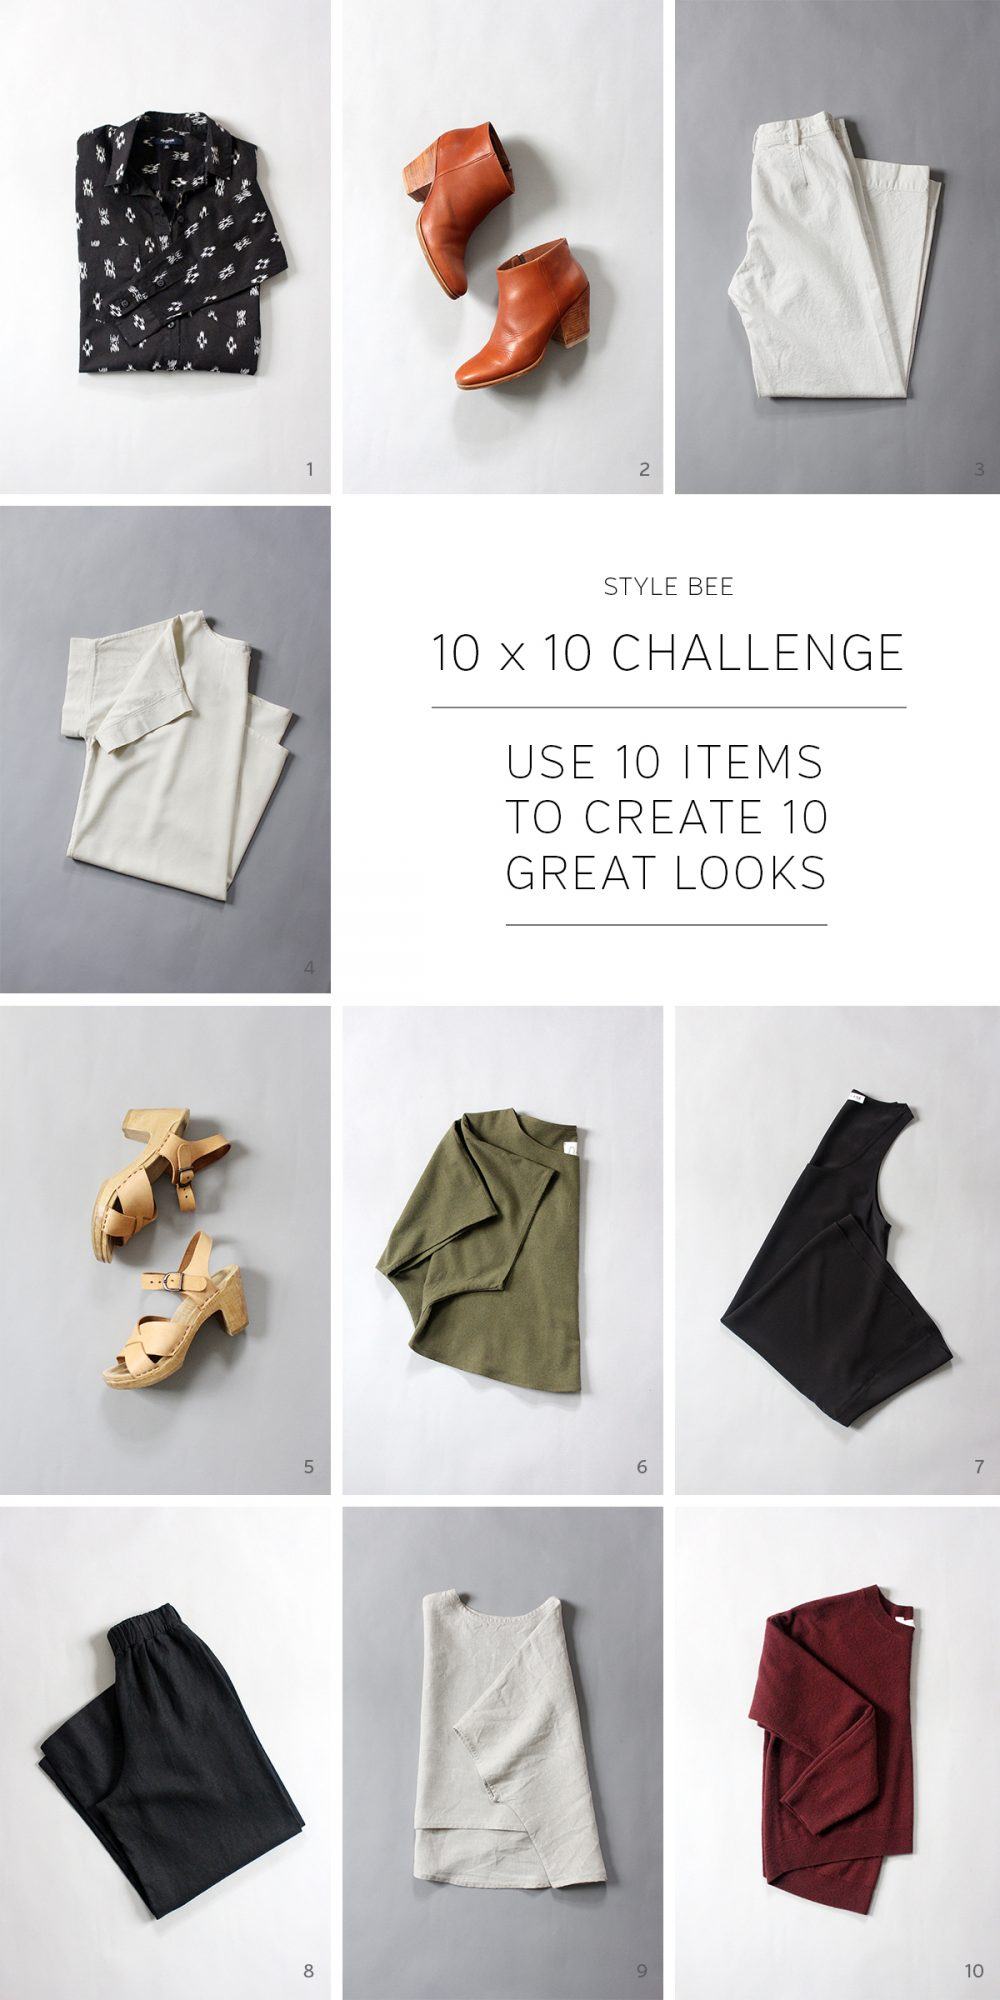 Style Bee - Spring '16 - 10 x 10 Challenge